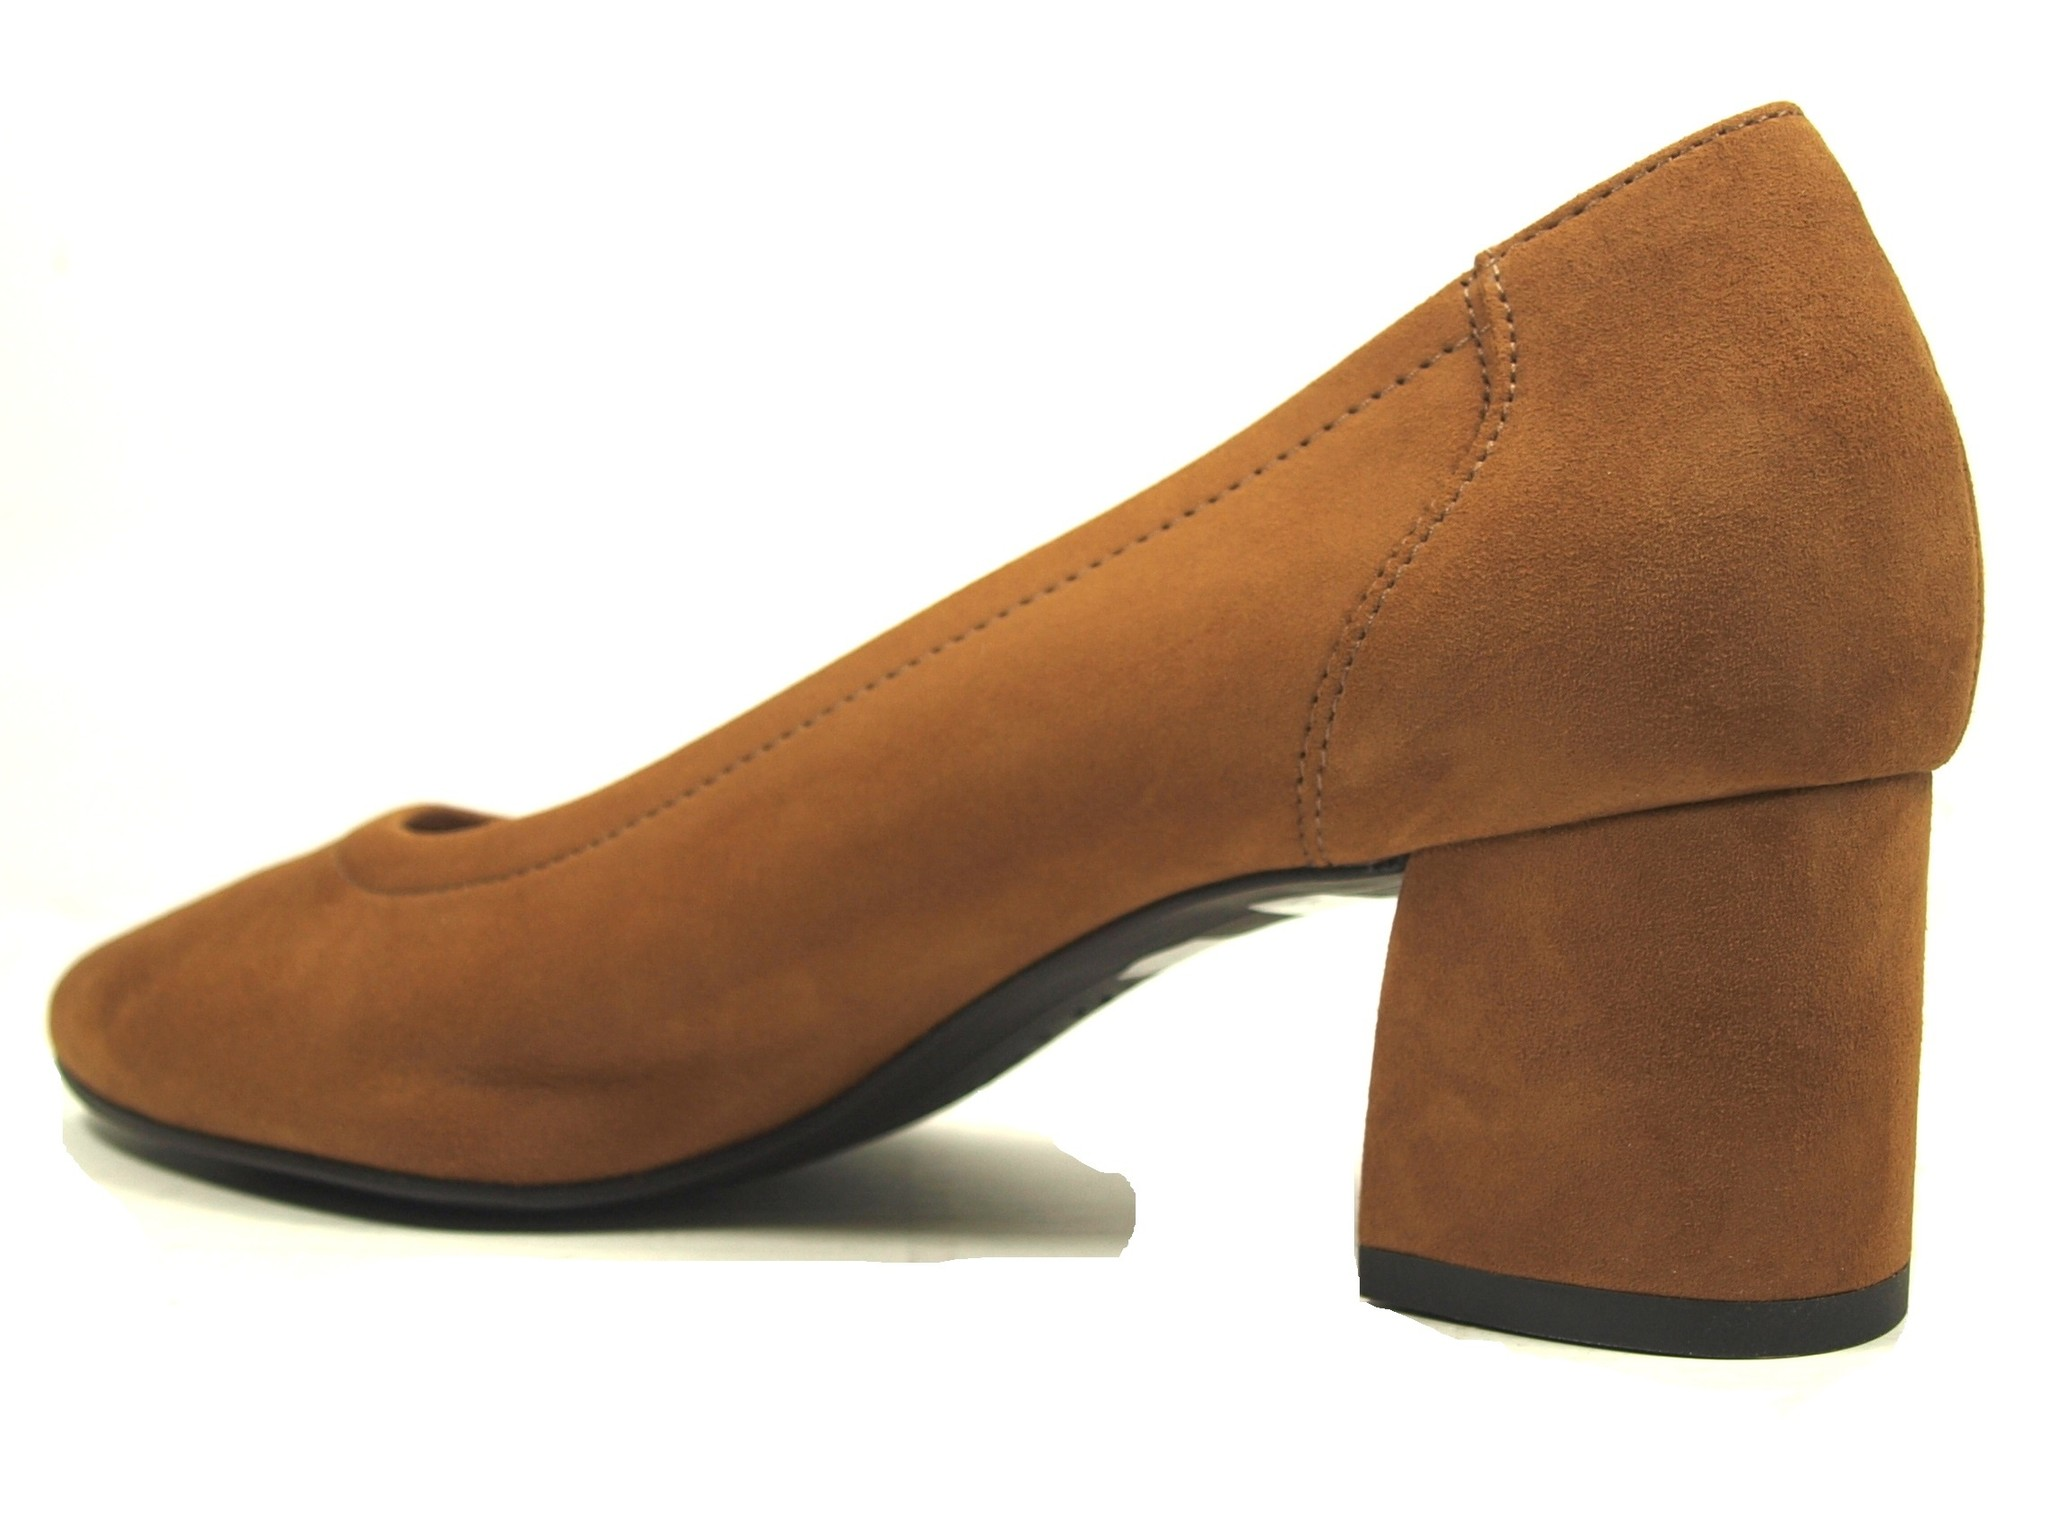 Paul Green Paul Green Pump 3806 Caramel